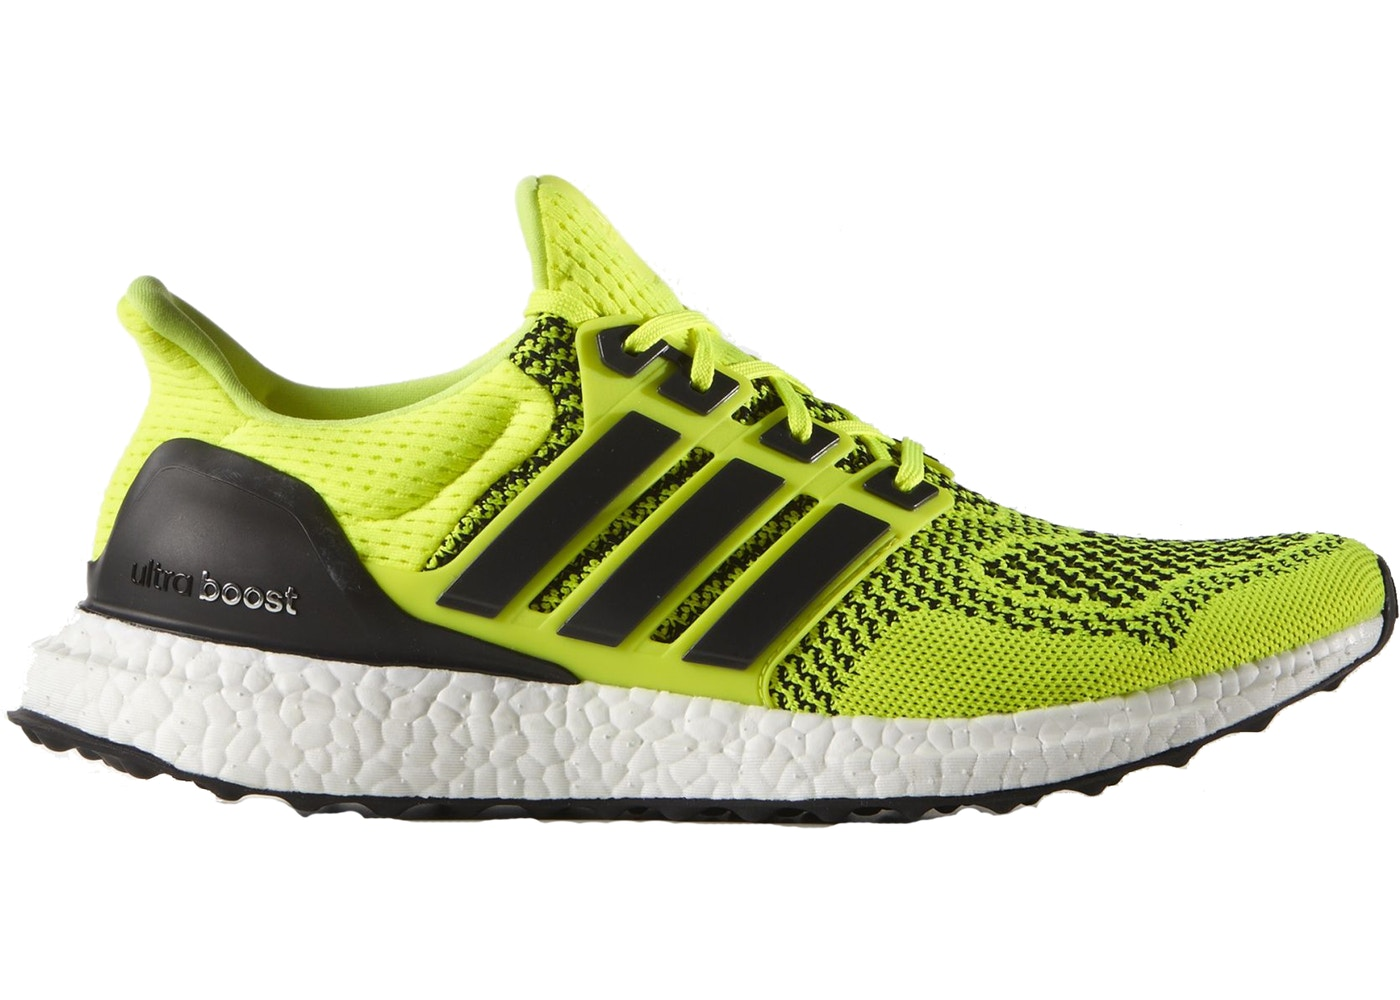 1b787a553ba adidas Ultra Boost 1.0 Solar Yellow - S77414